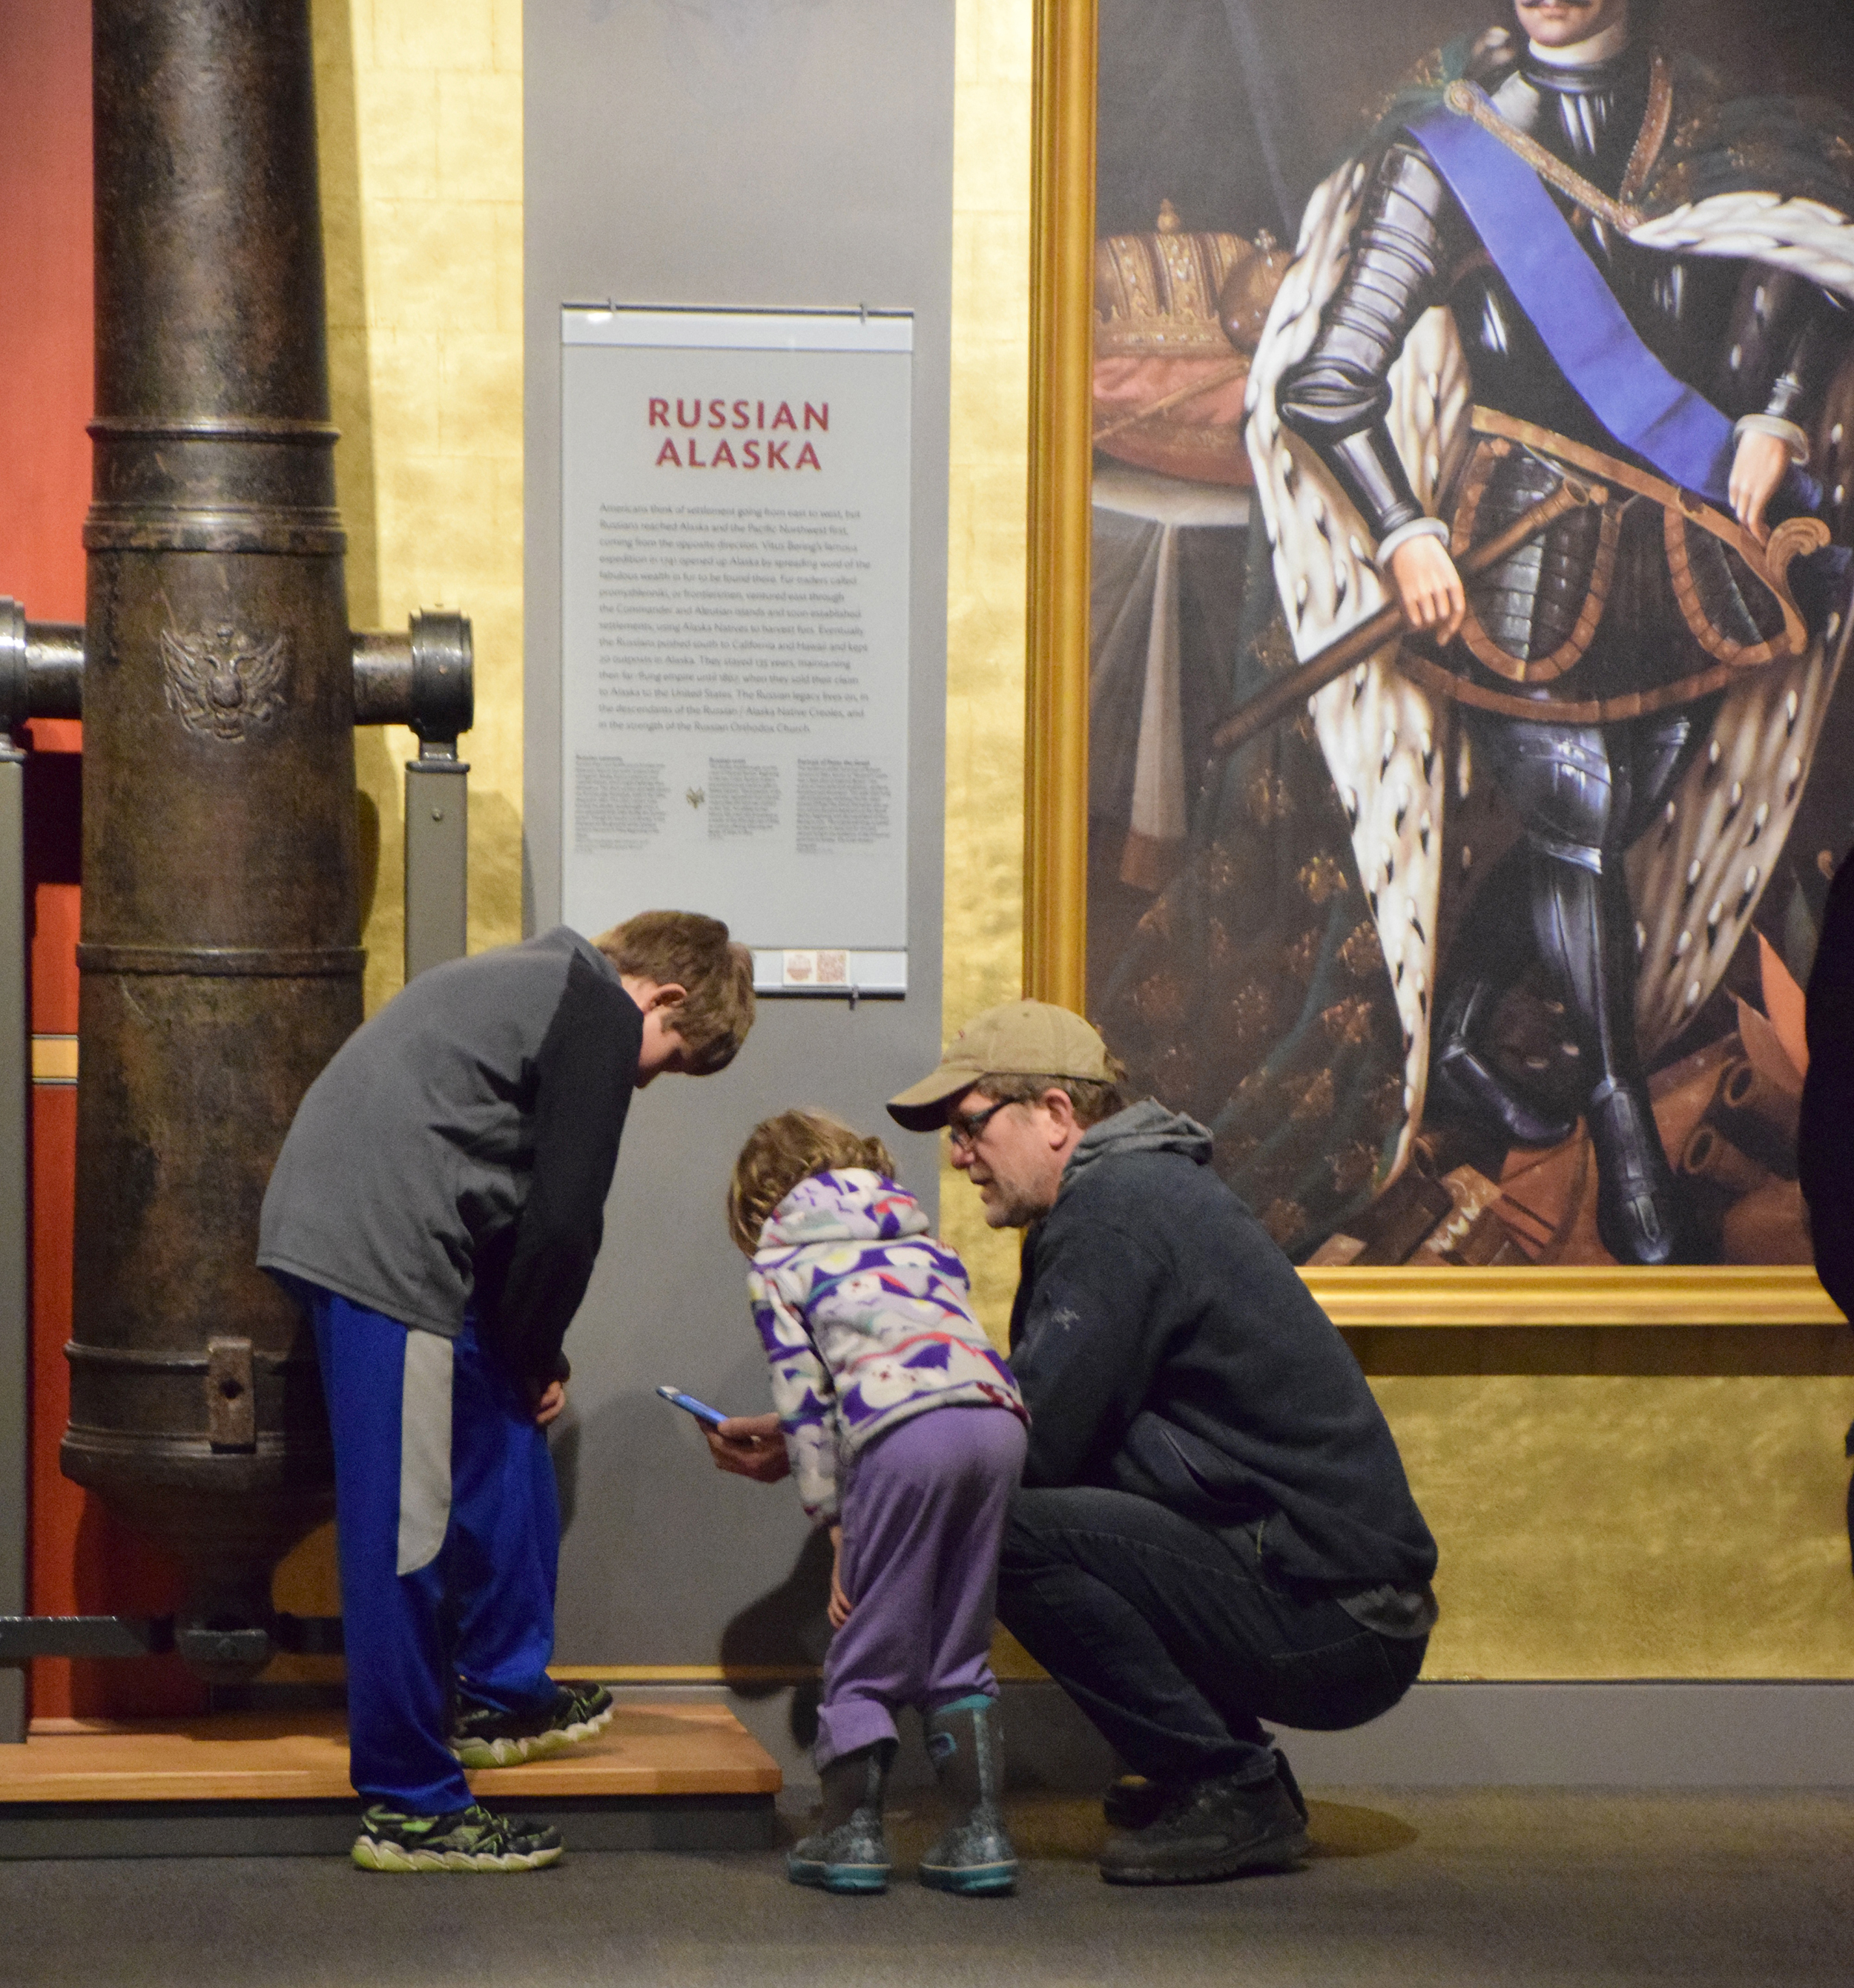 Photo: Kids and their father peer at a smartphone as they investigate the museum.